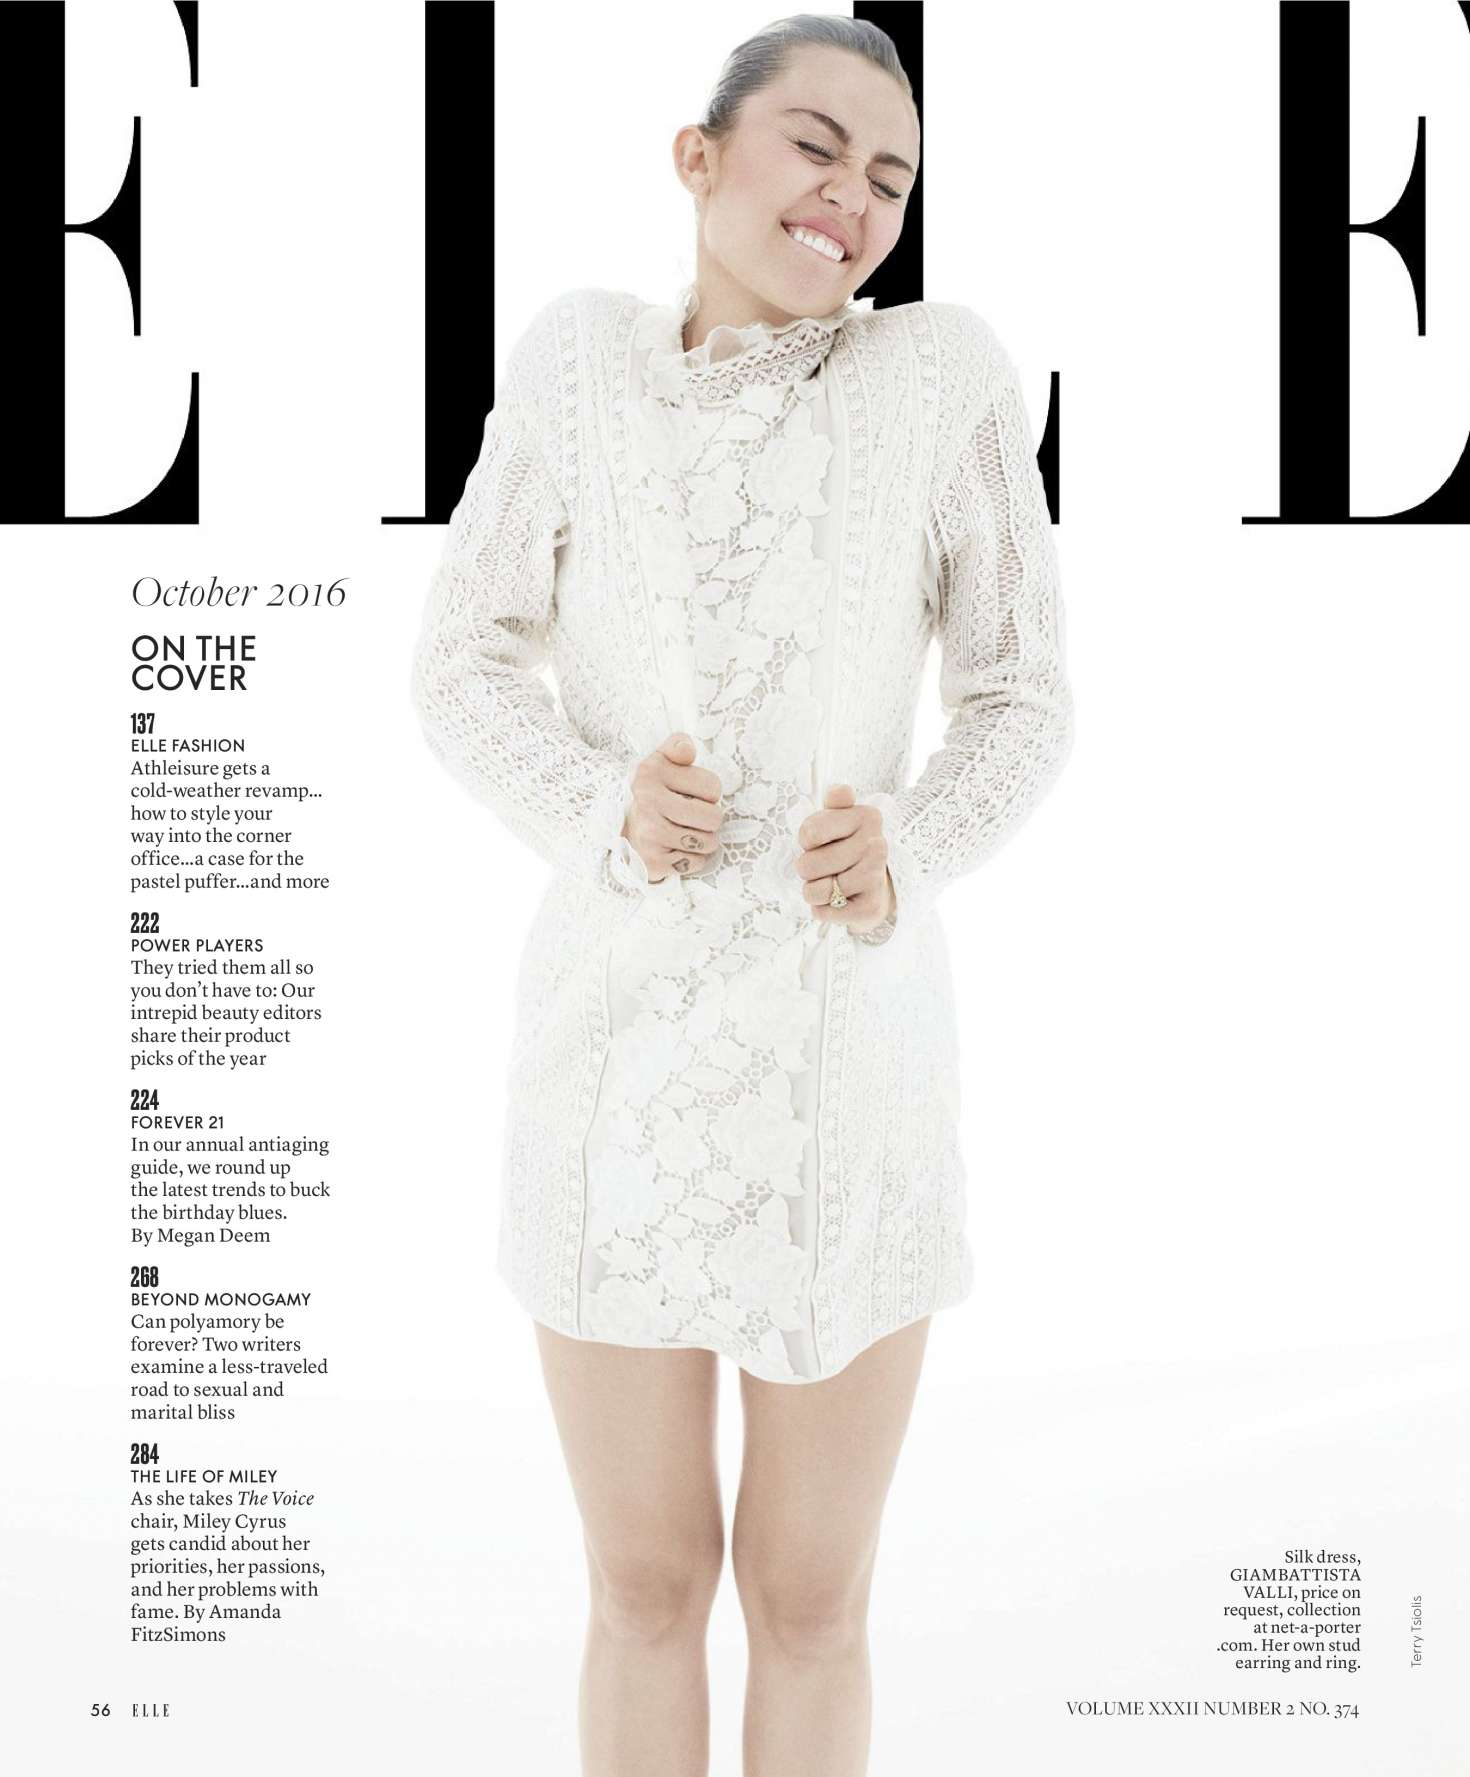 Miley Cyrus - Elle Magazine (October 2016) adds